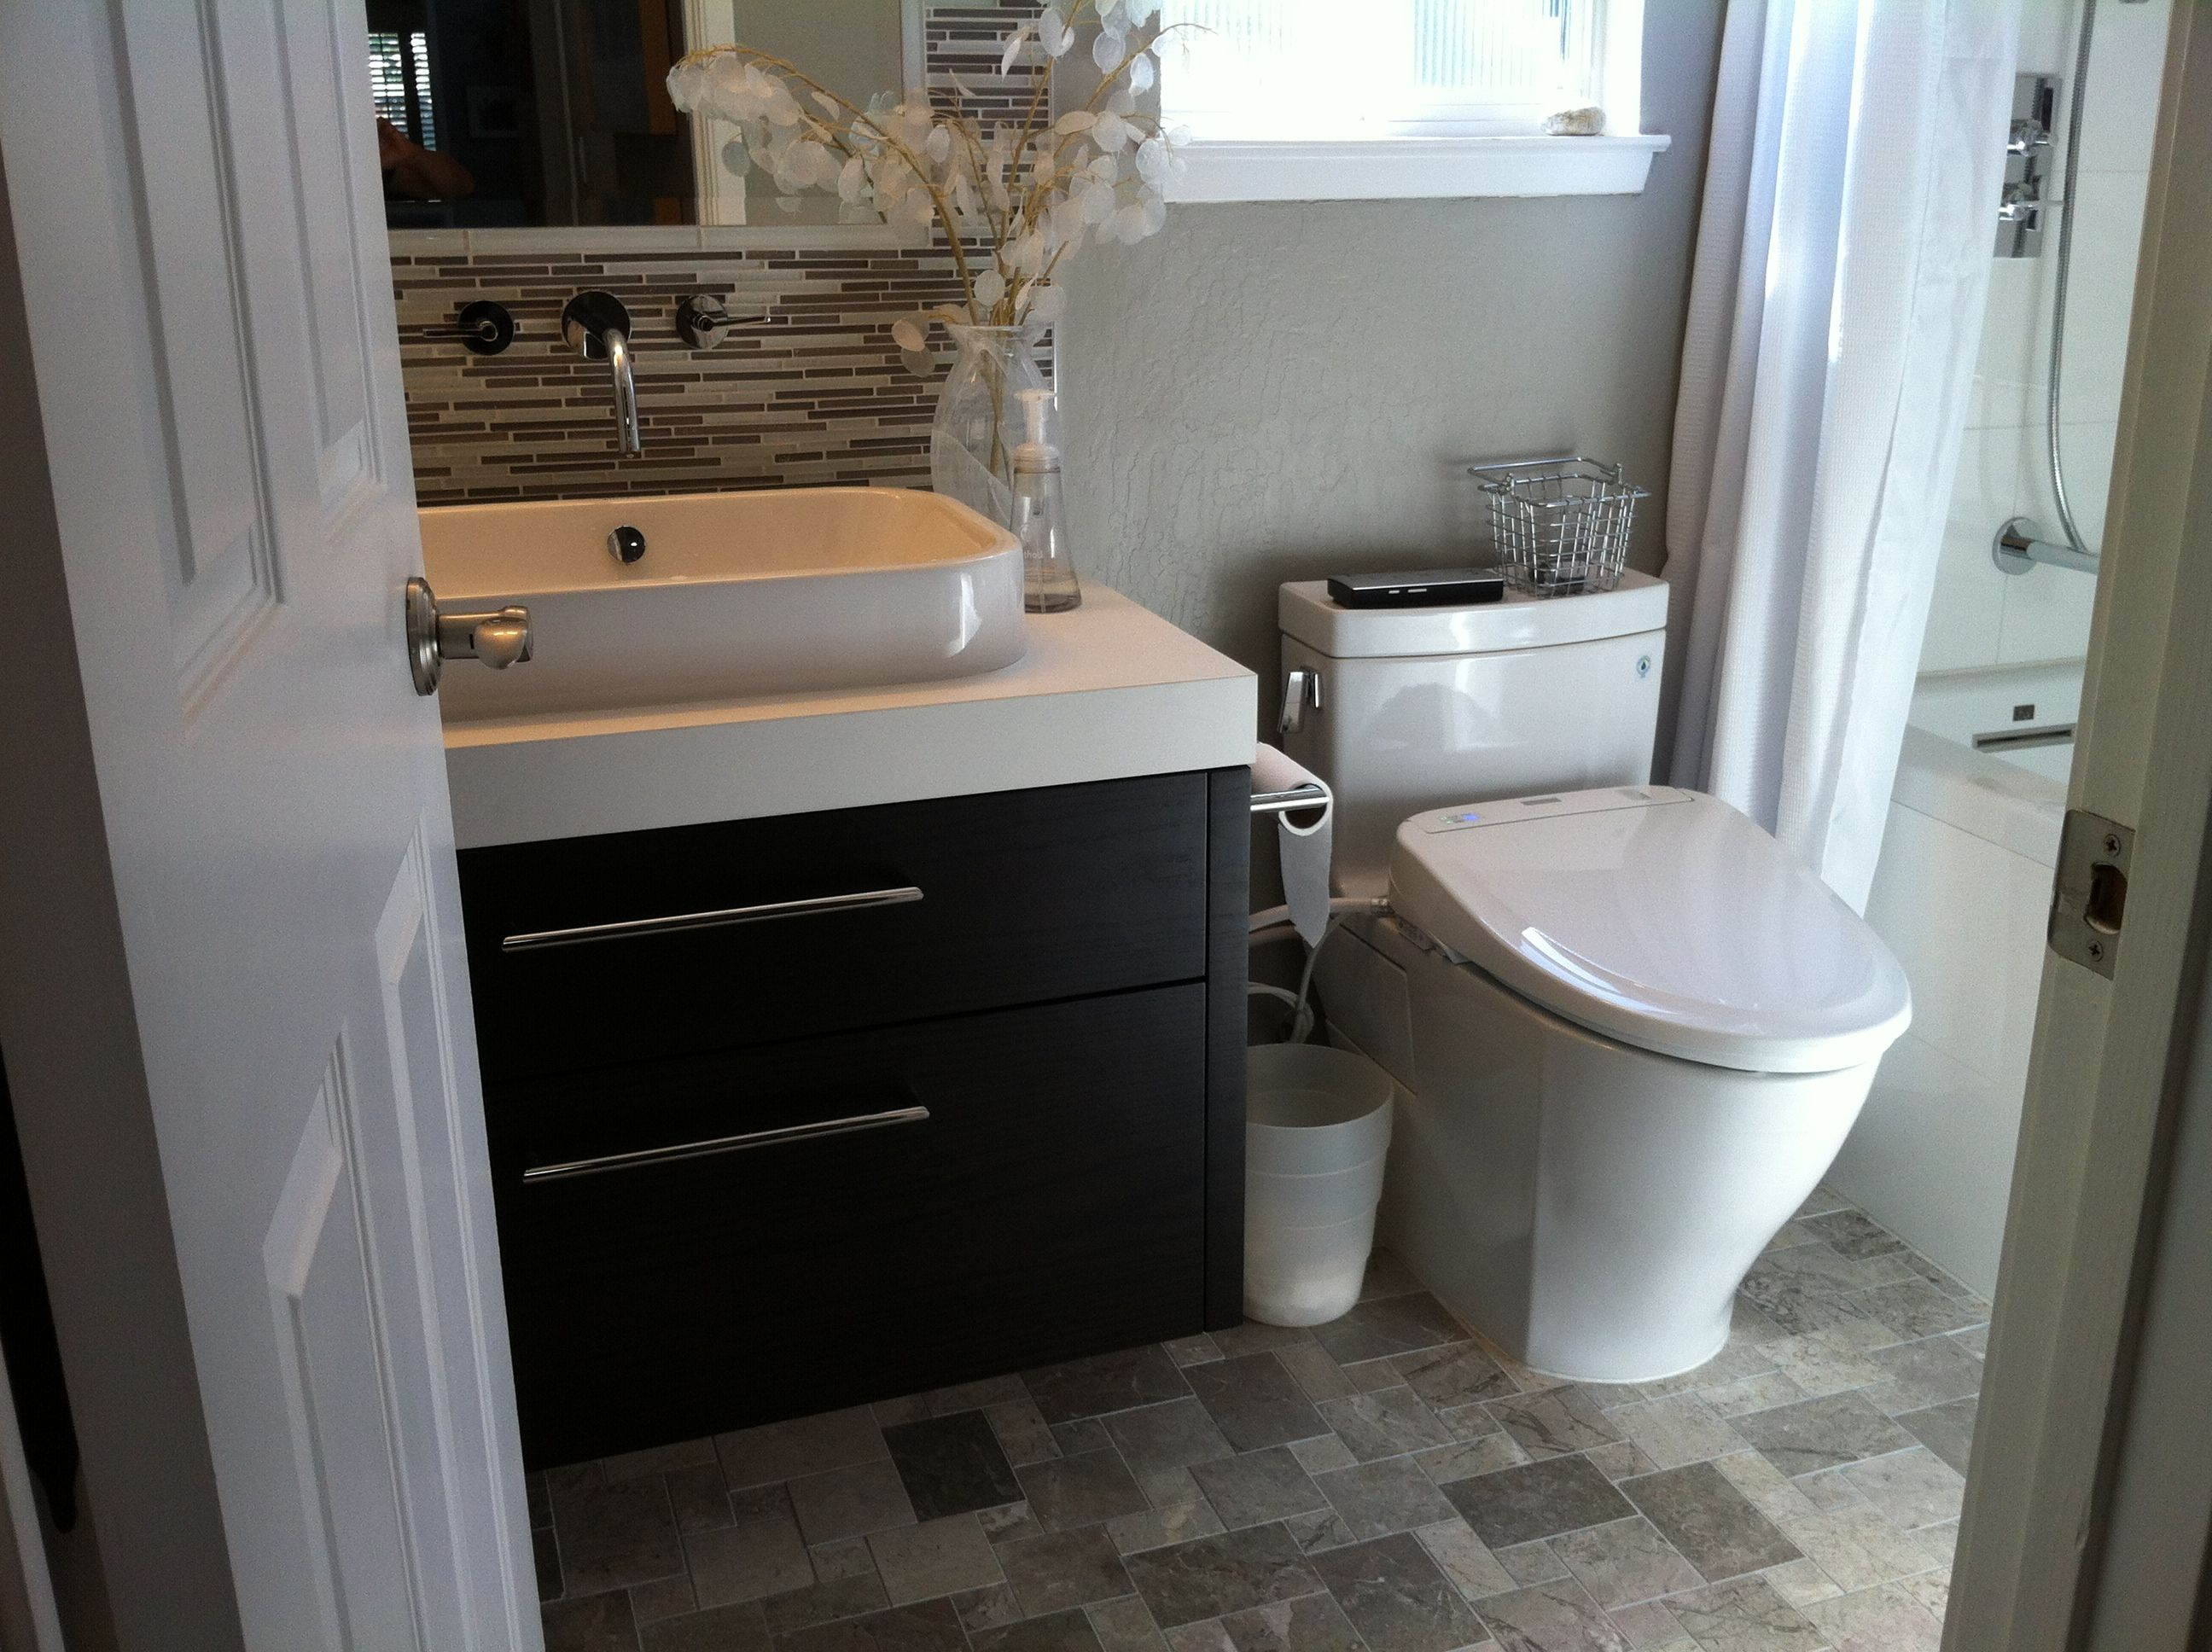 ideas luxury china of vitreous design new dartmouth bathroom toto undermount best sinks